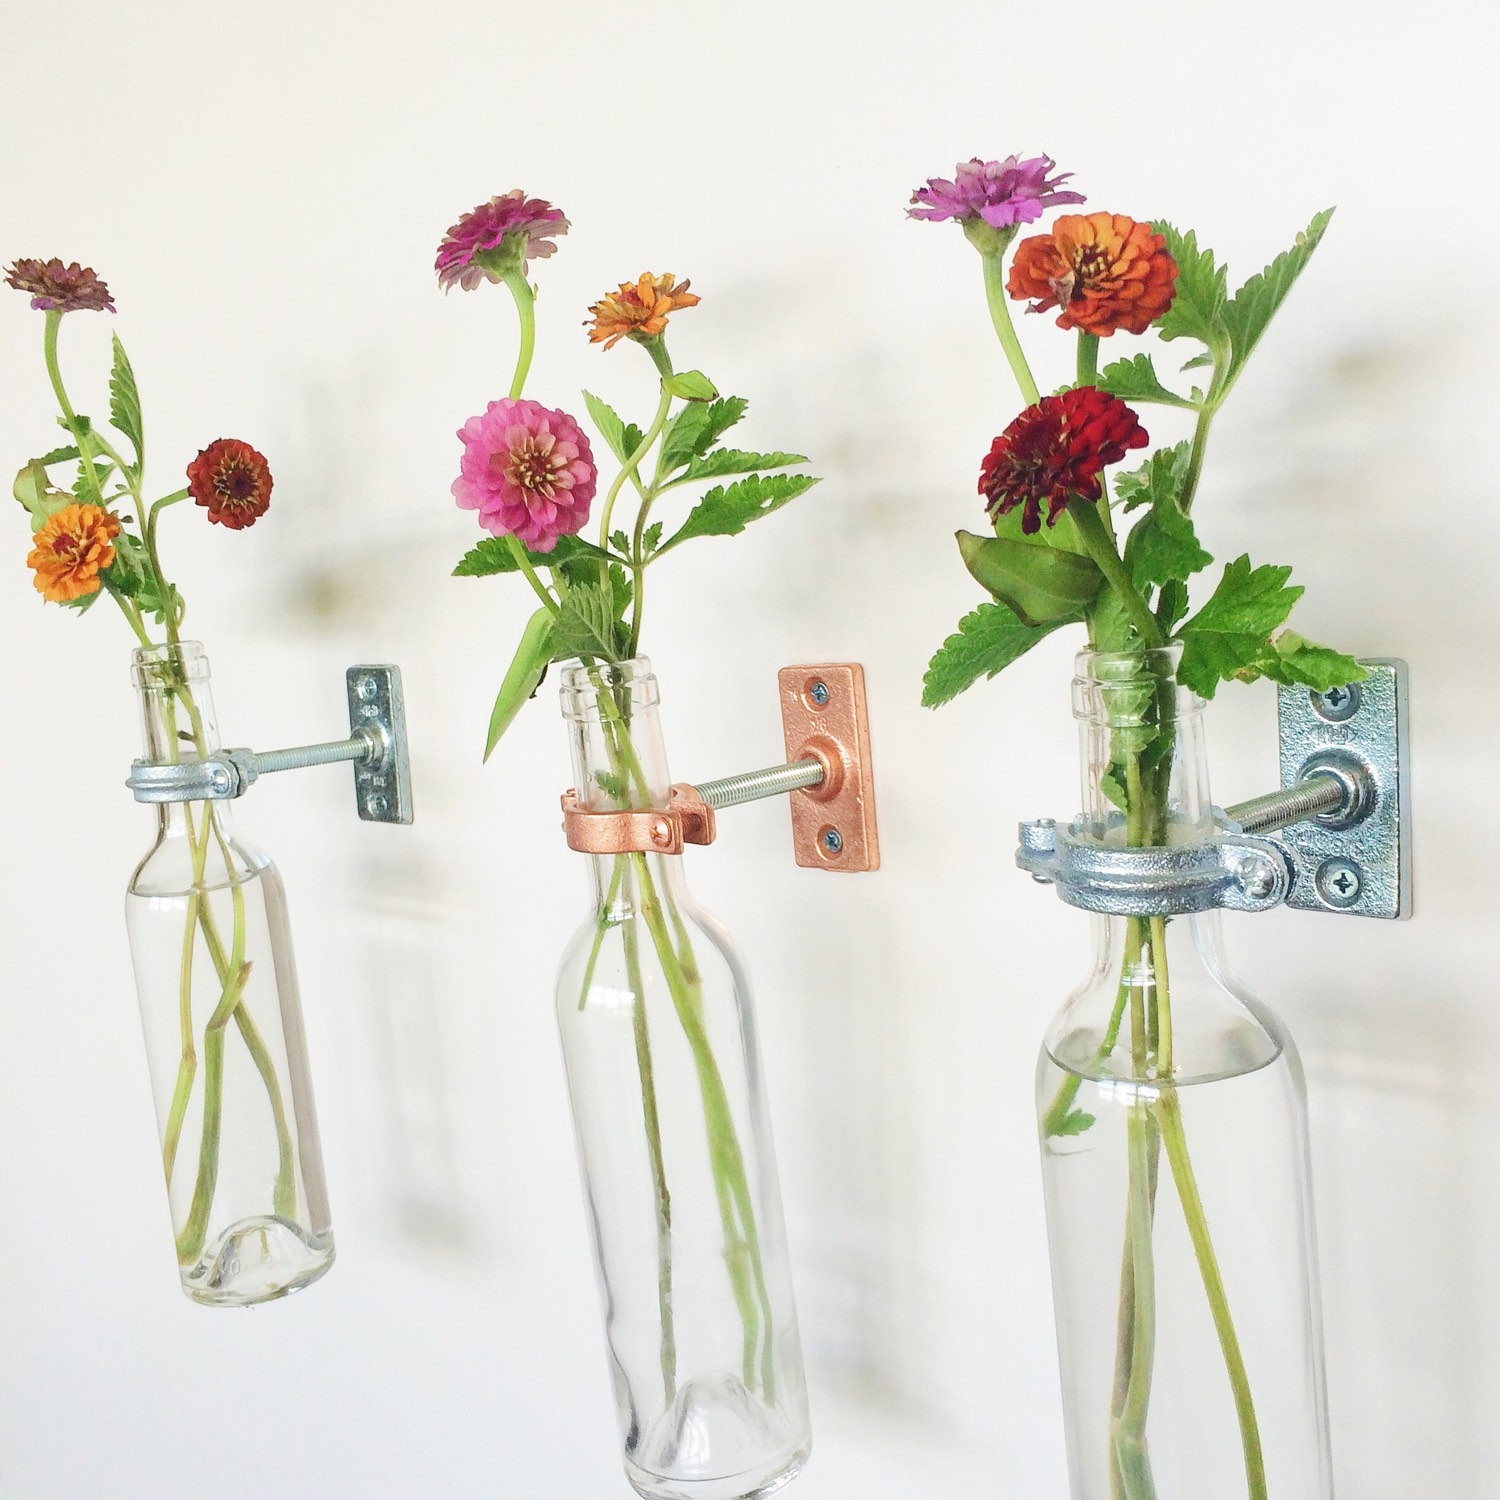 flowers no vase of hanging vases with flowers t pertaining to wall flower hanging bud vase beautiful 2 wine bottle wall flower vases mother s day t wall of wall flower hanging bud vase